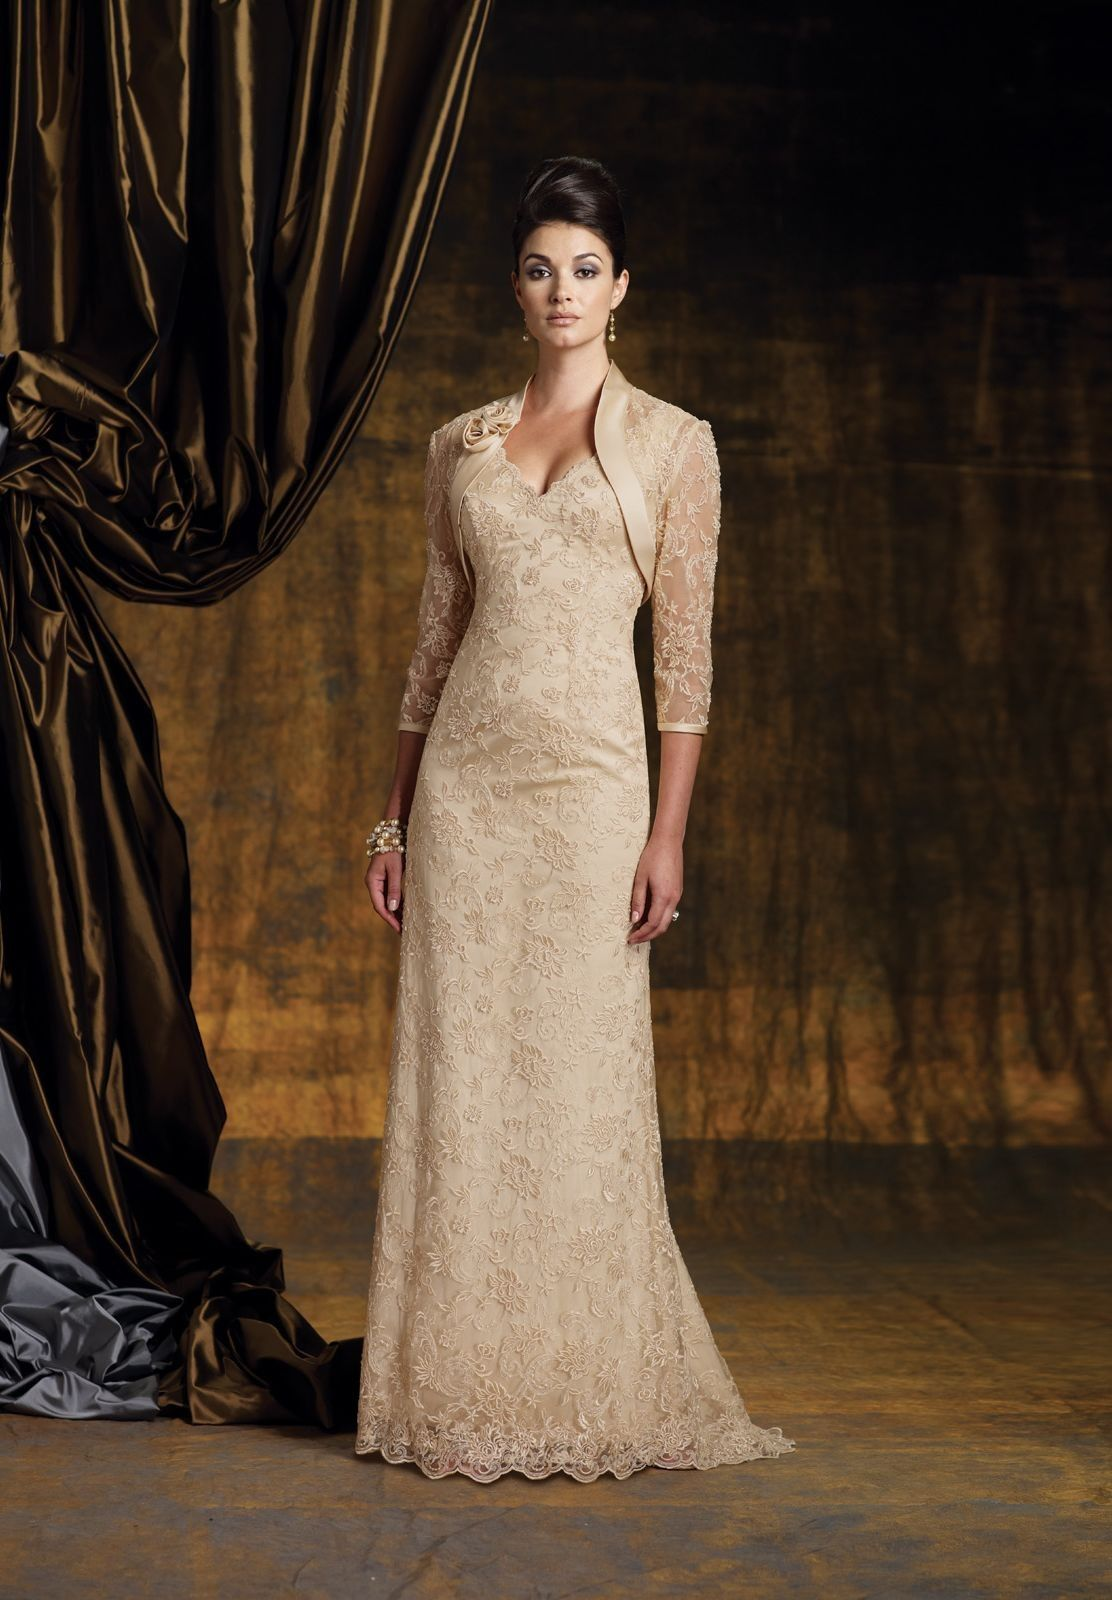 Wedding dresses for mother of the bride  Lace VNeck ALine Elegant Long Mother of The Bride Dress with